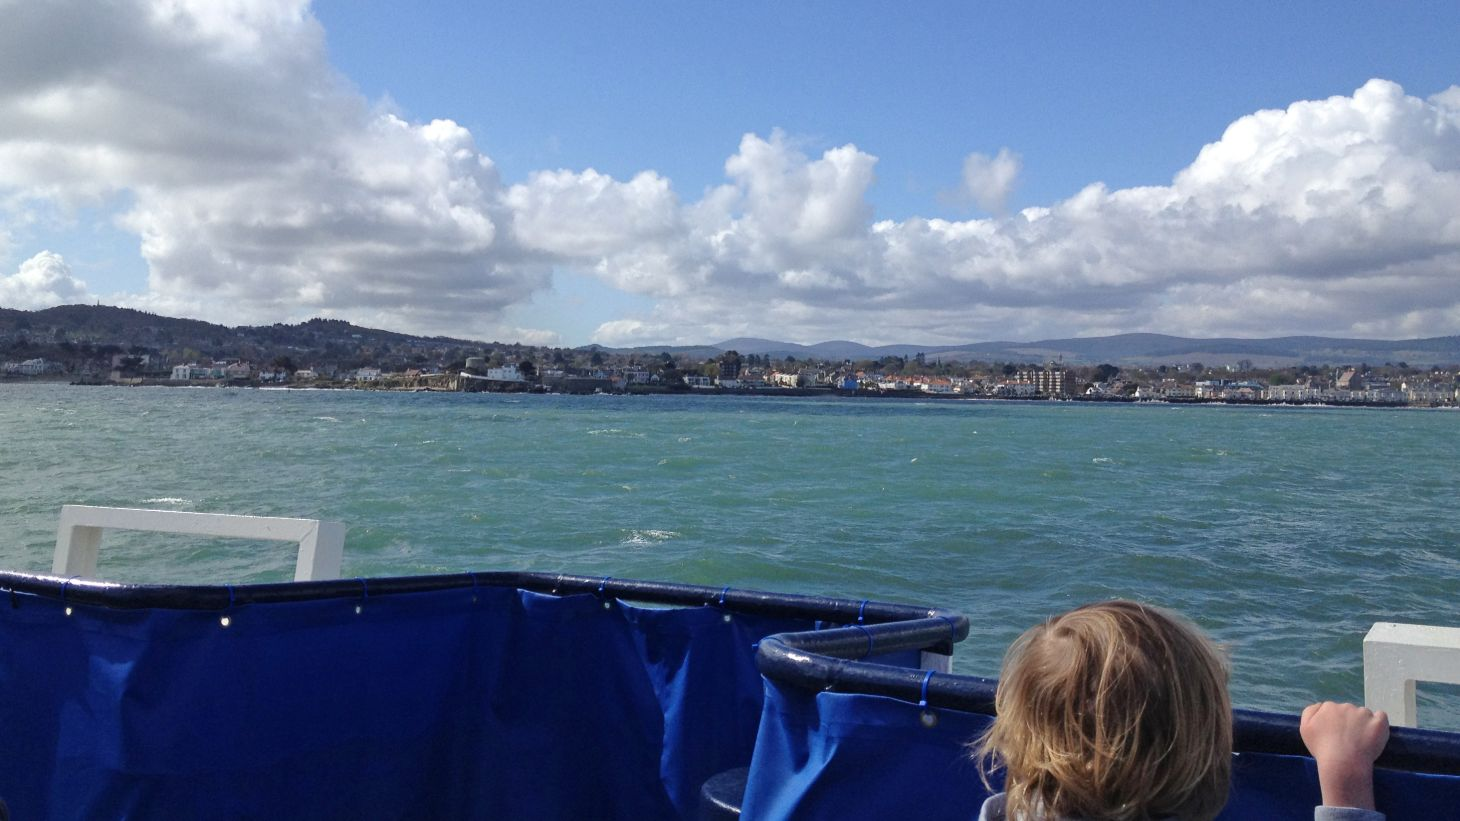 Take the family on a boat trip to see Dublin Bay.